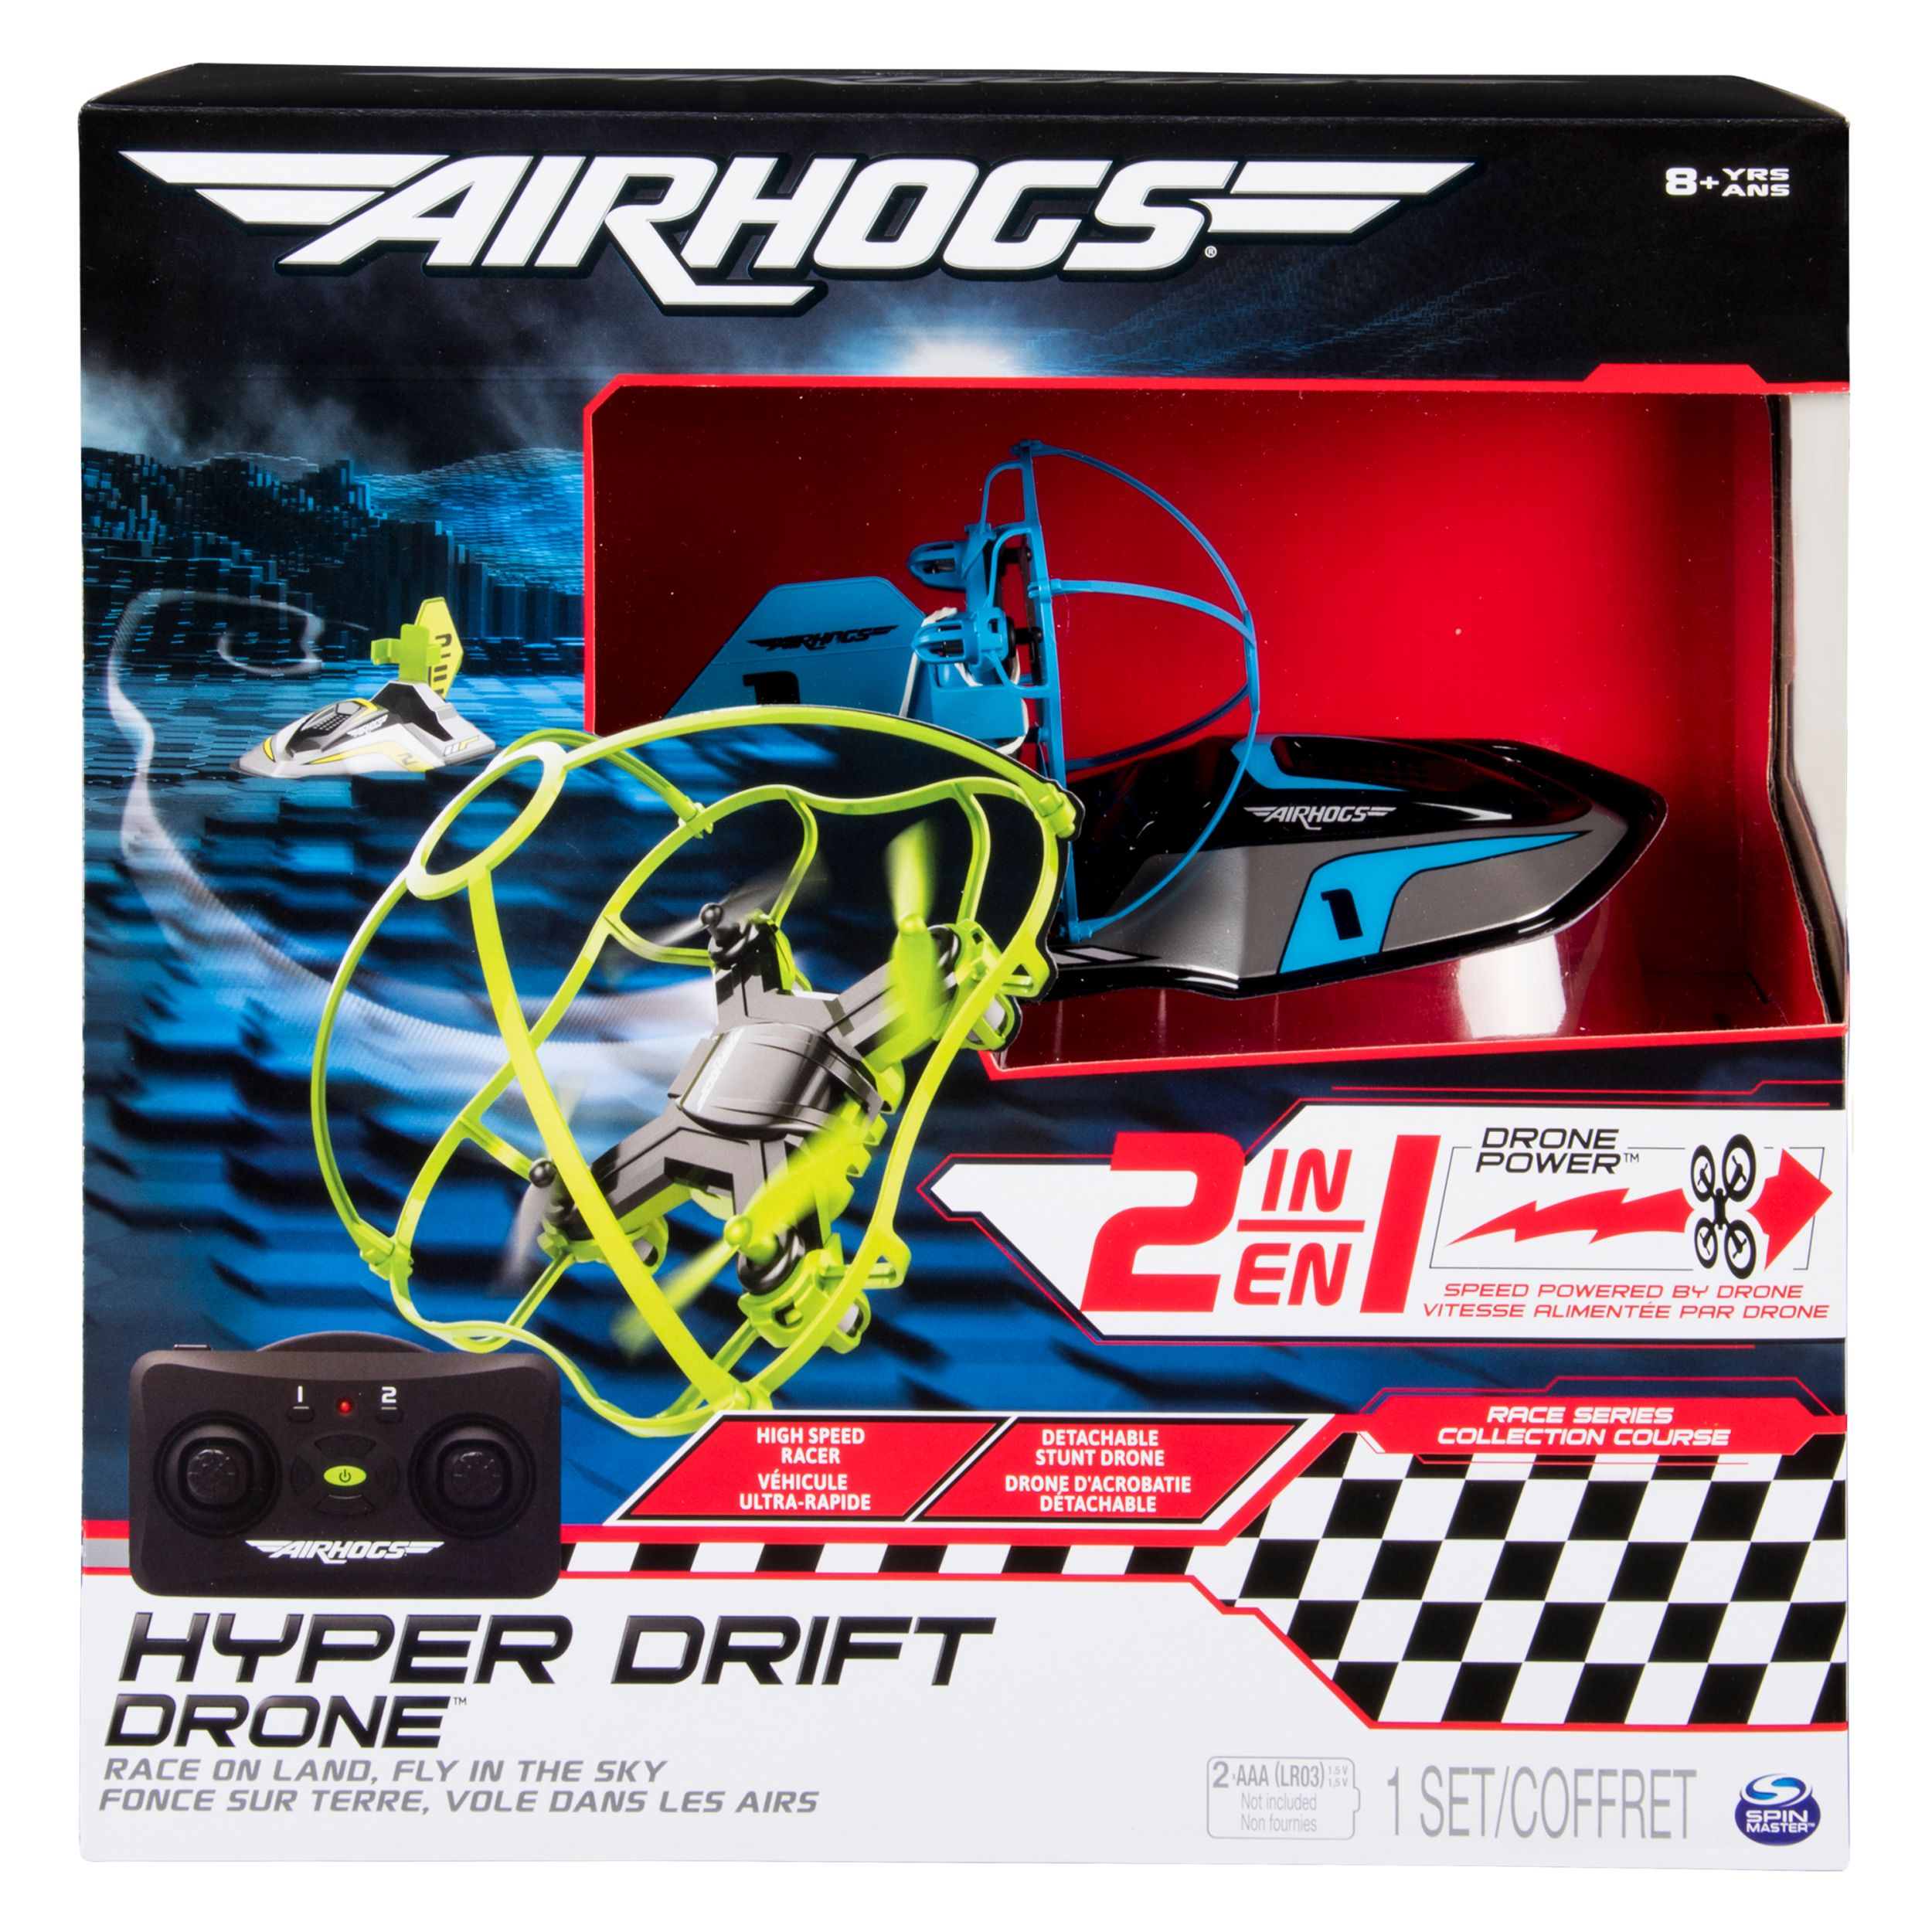 Air Hogs 2 In 1 Hyper Drift Drone For High Speed Racing And Flying Blue